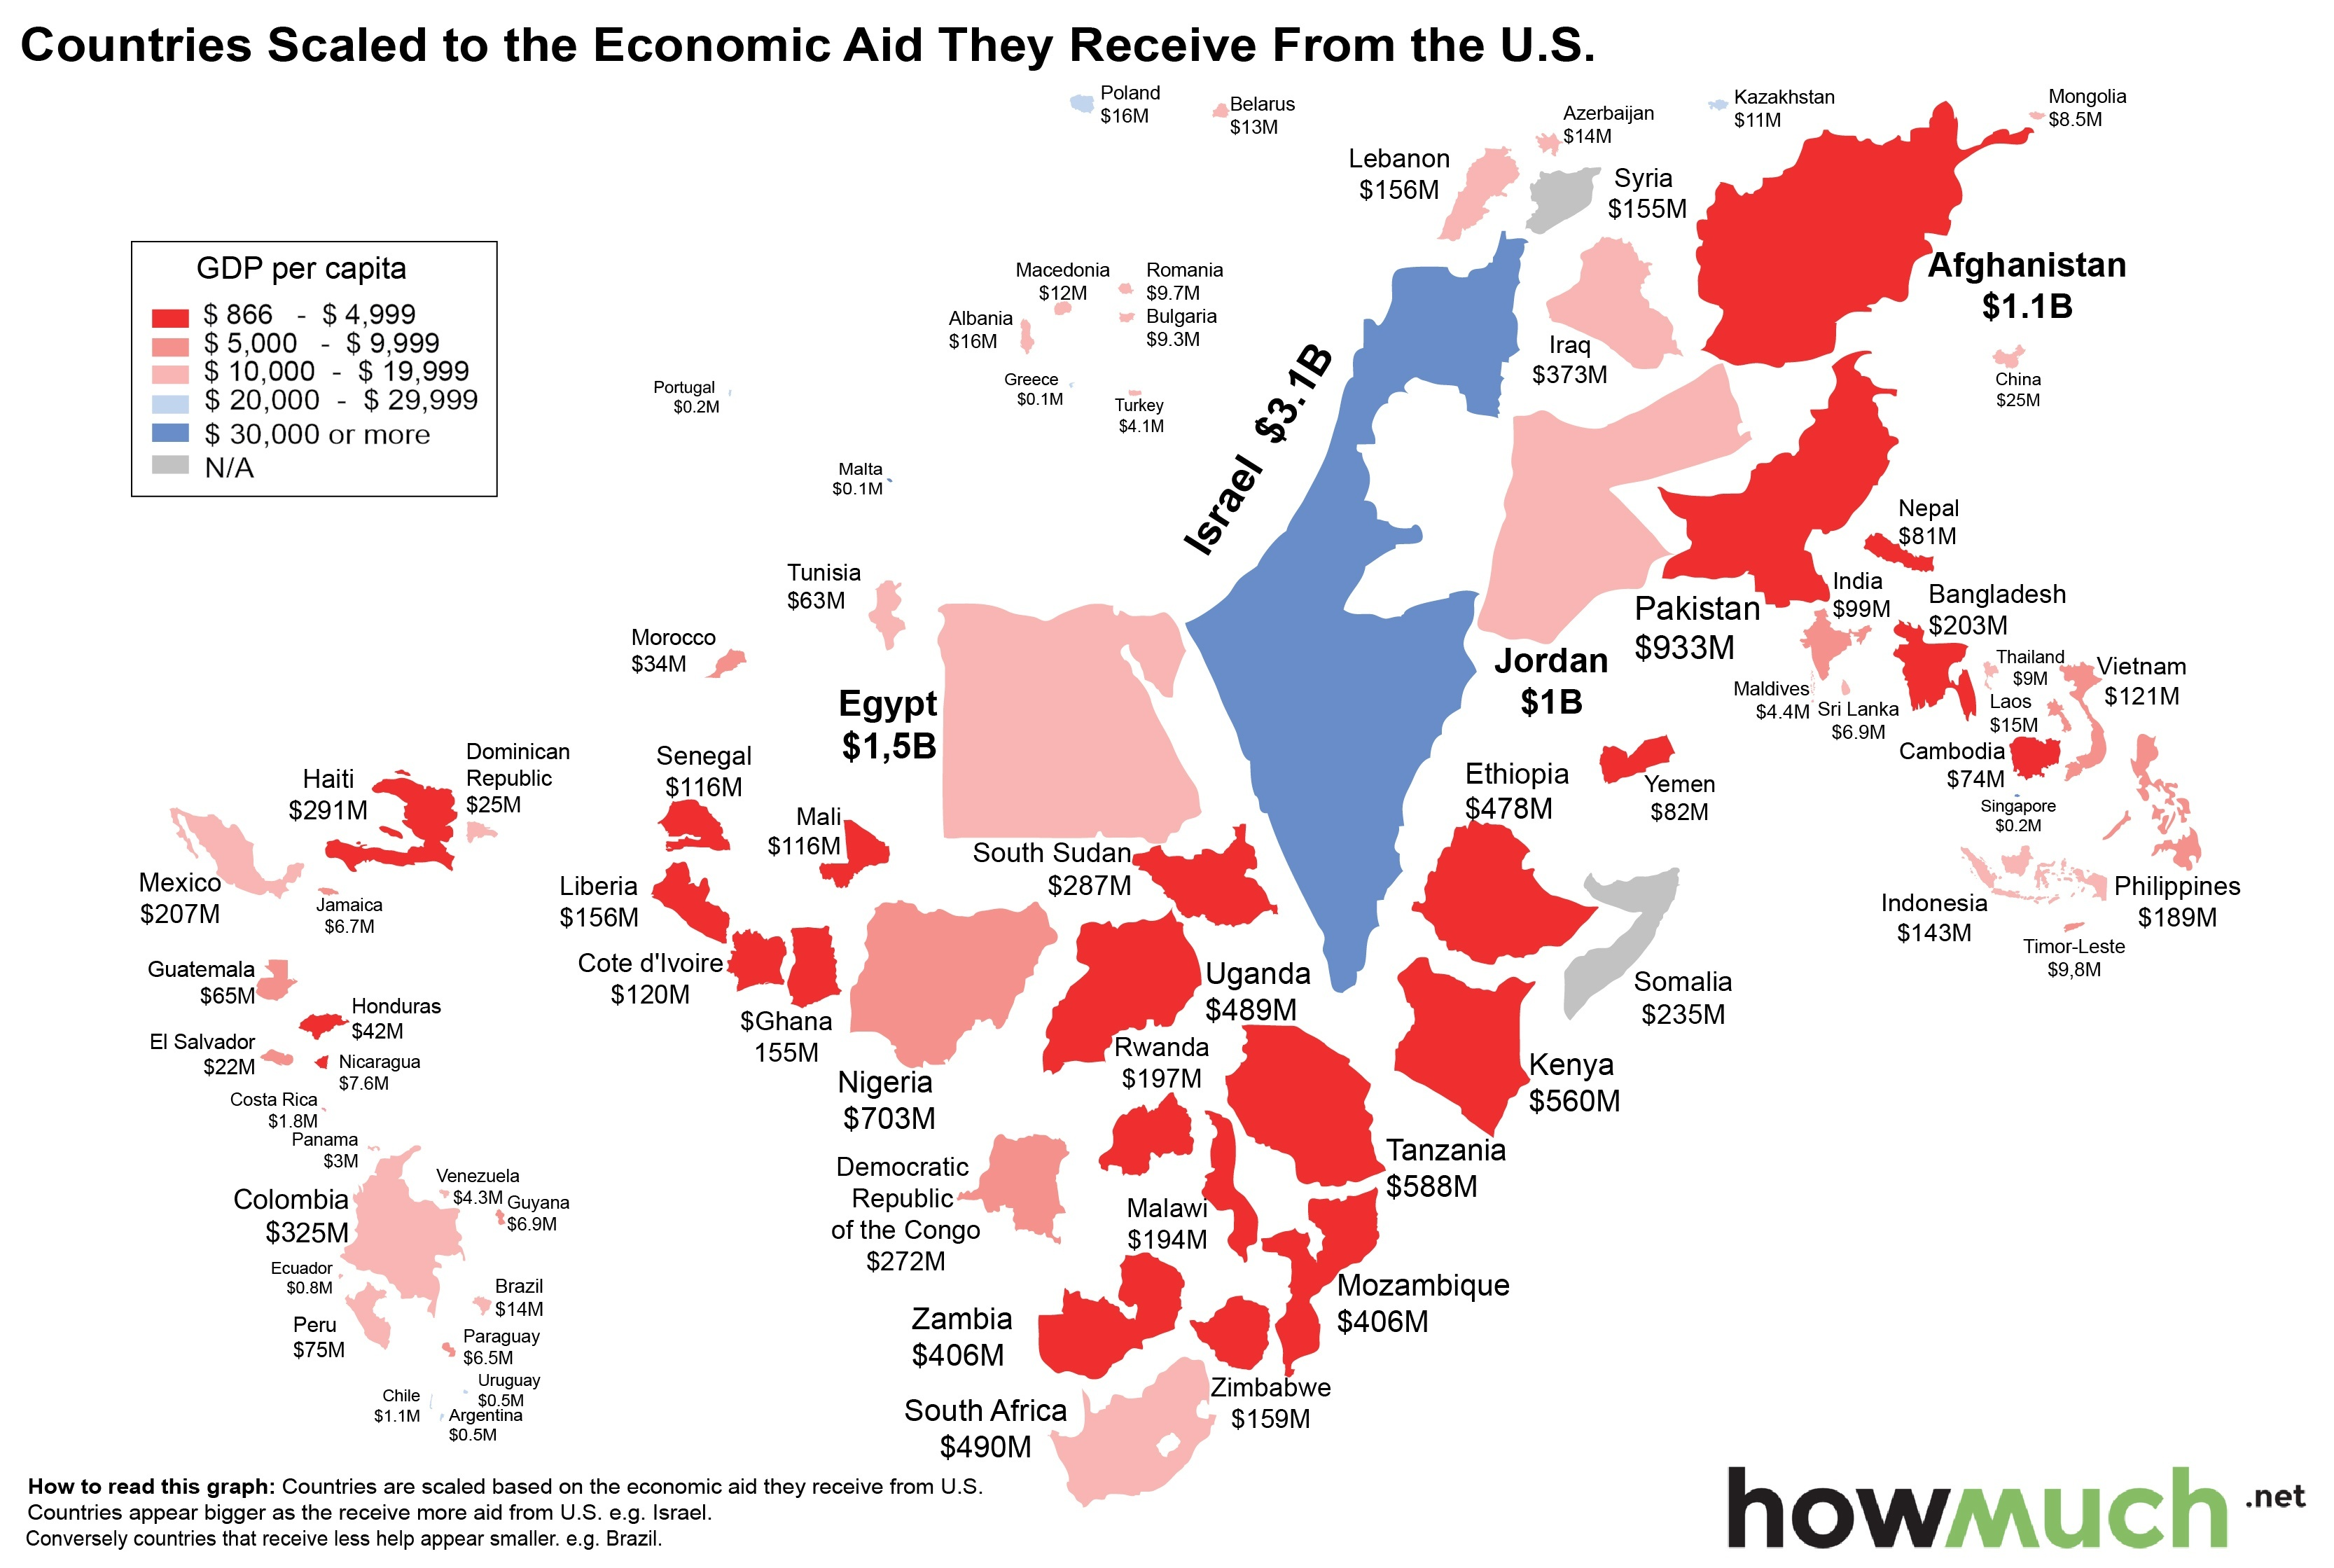 1-countries-scaled-to-economic-aid-from-